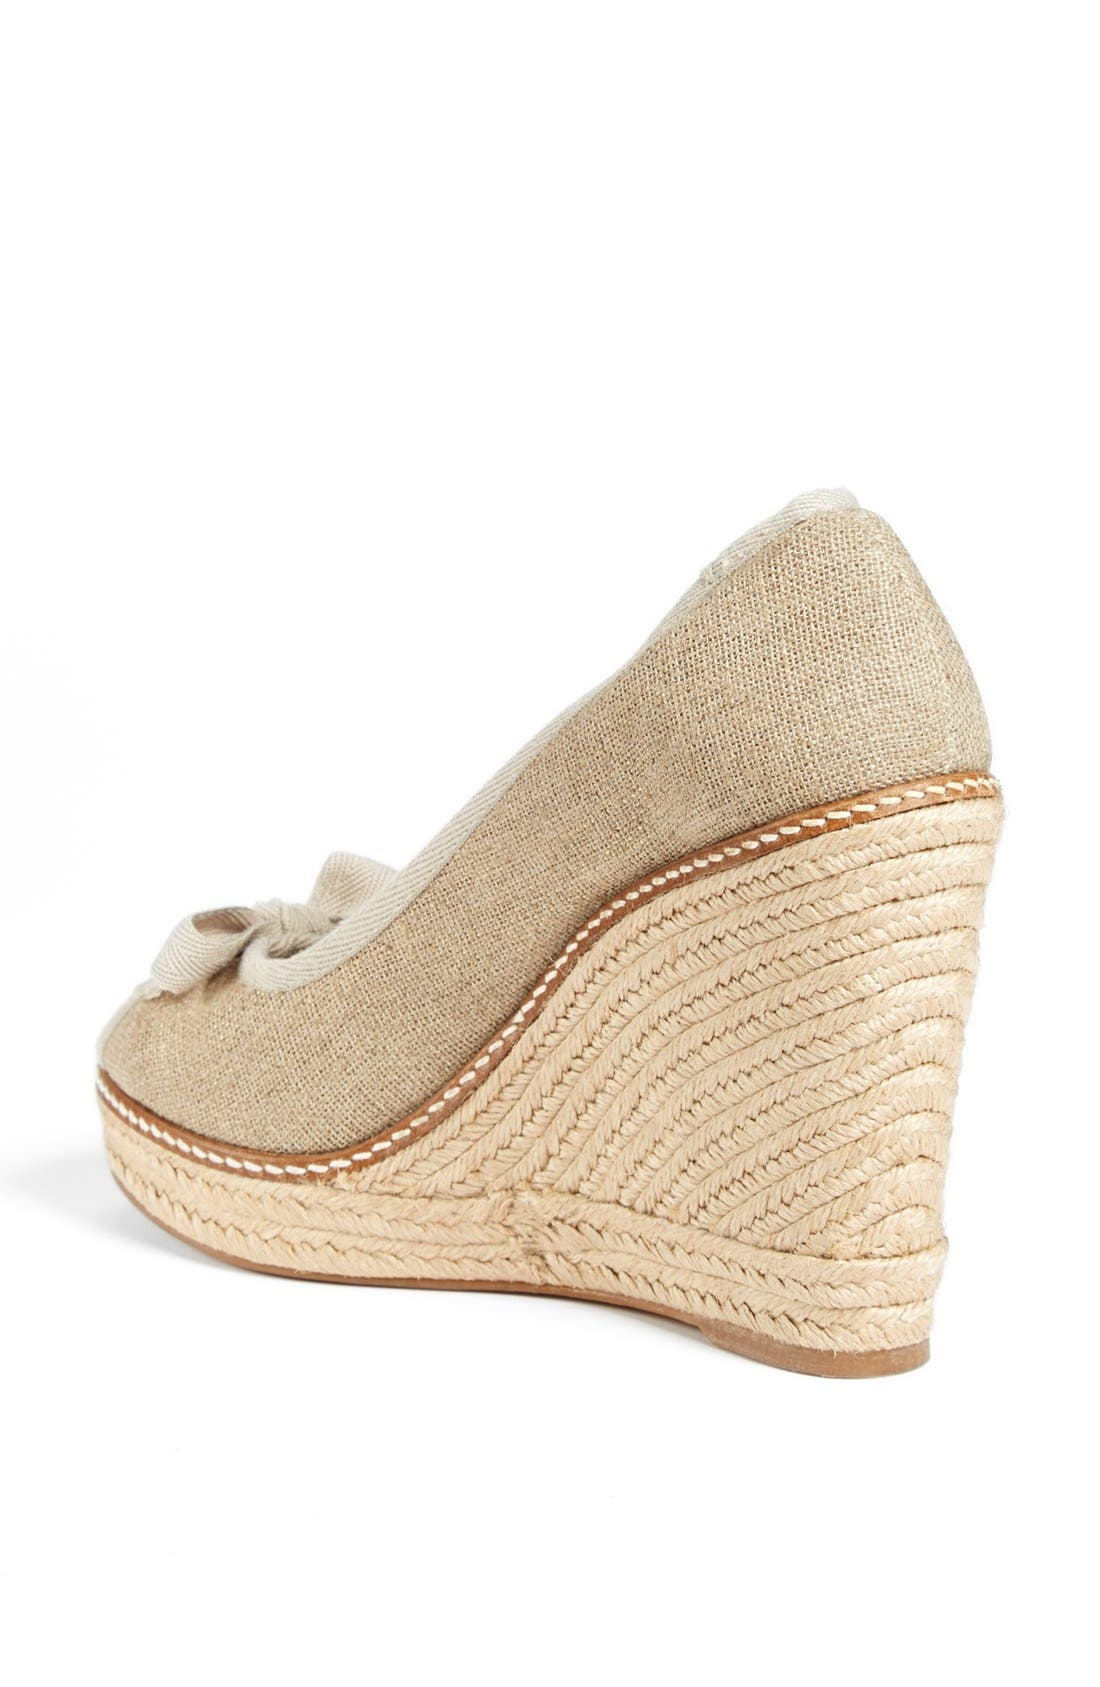 Alternate Image 2  - Tory Burch 'Jackie' Espadrille Wedge